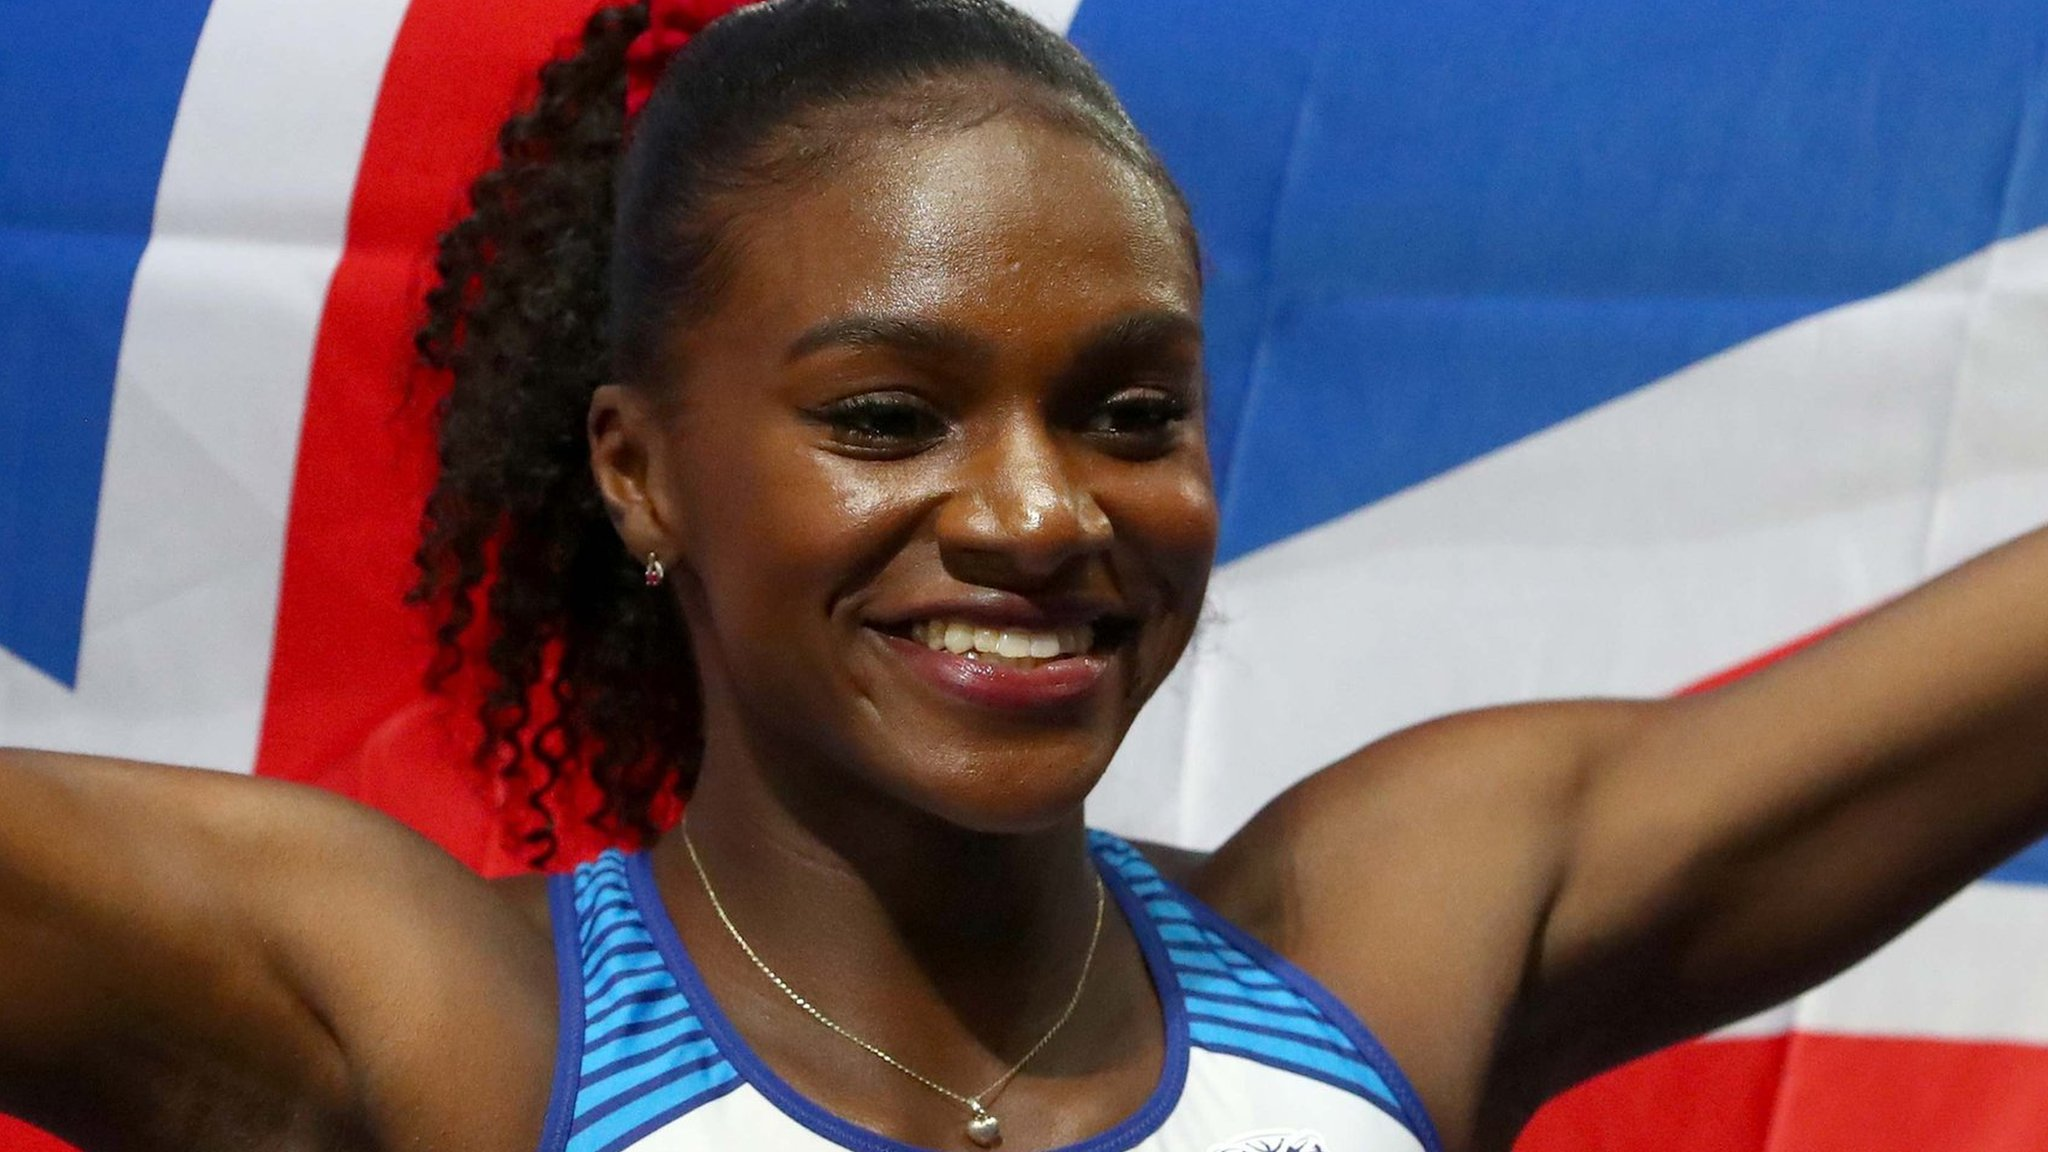 Dina Asher-Smith says she has to get faster to win Olympic gold